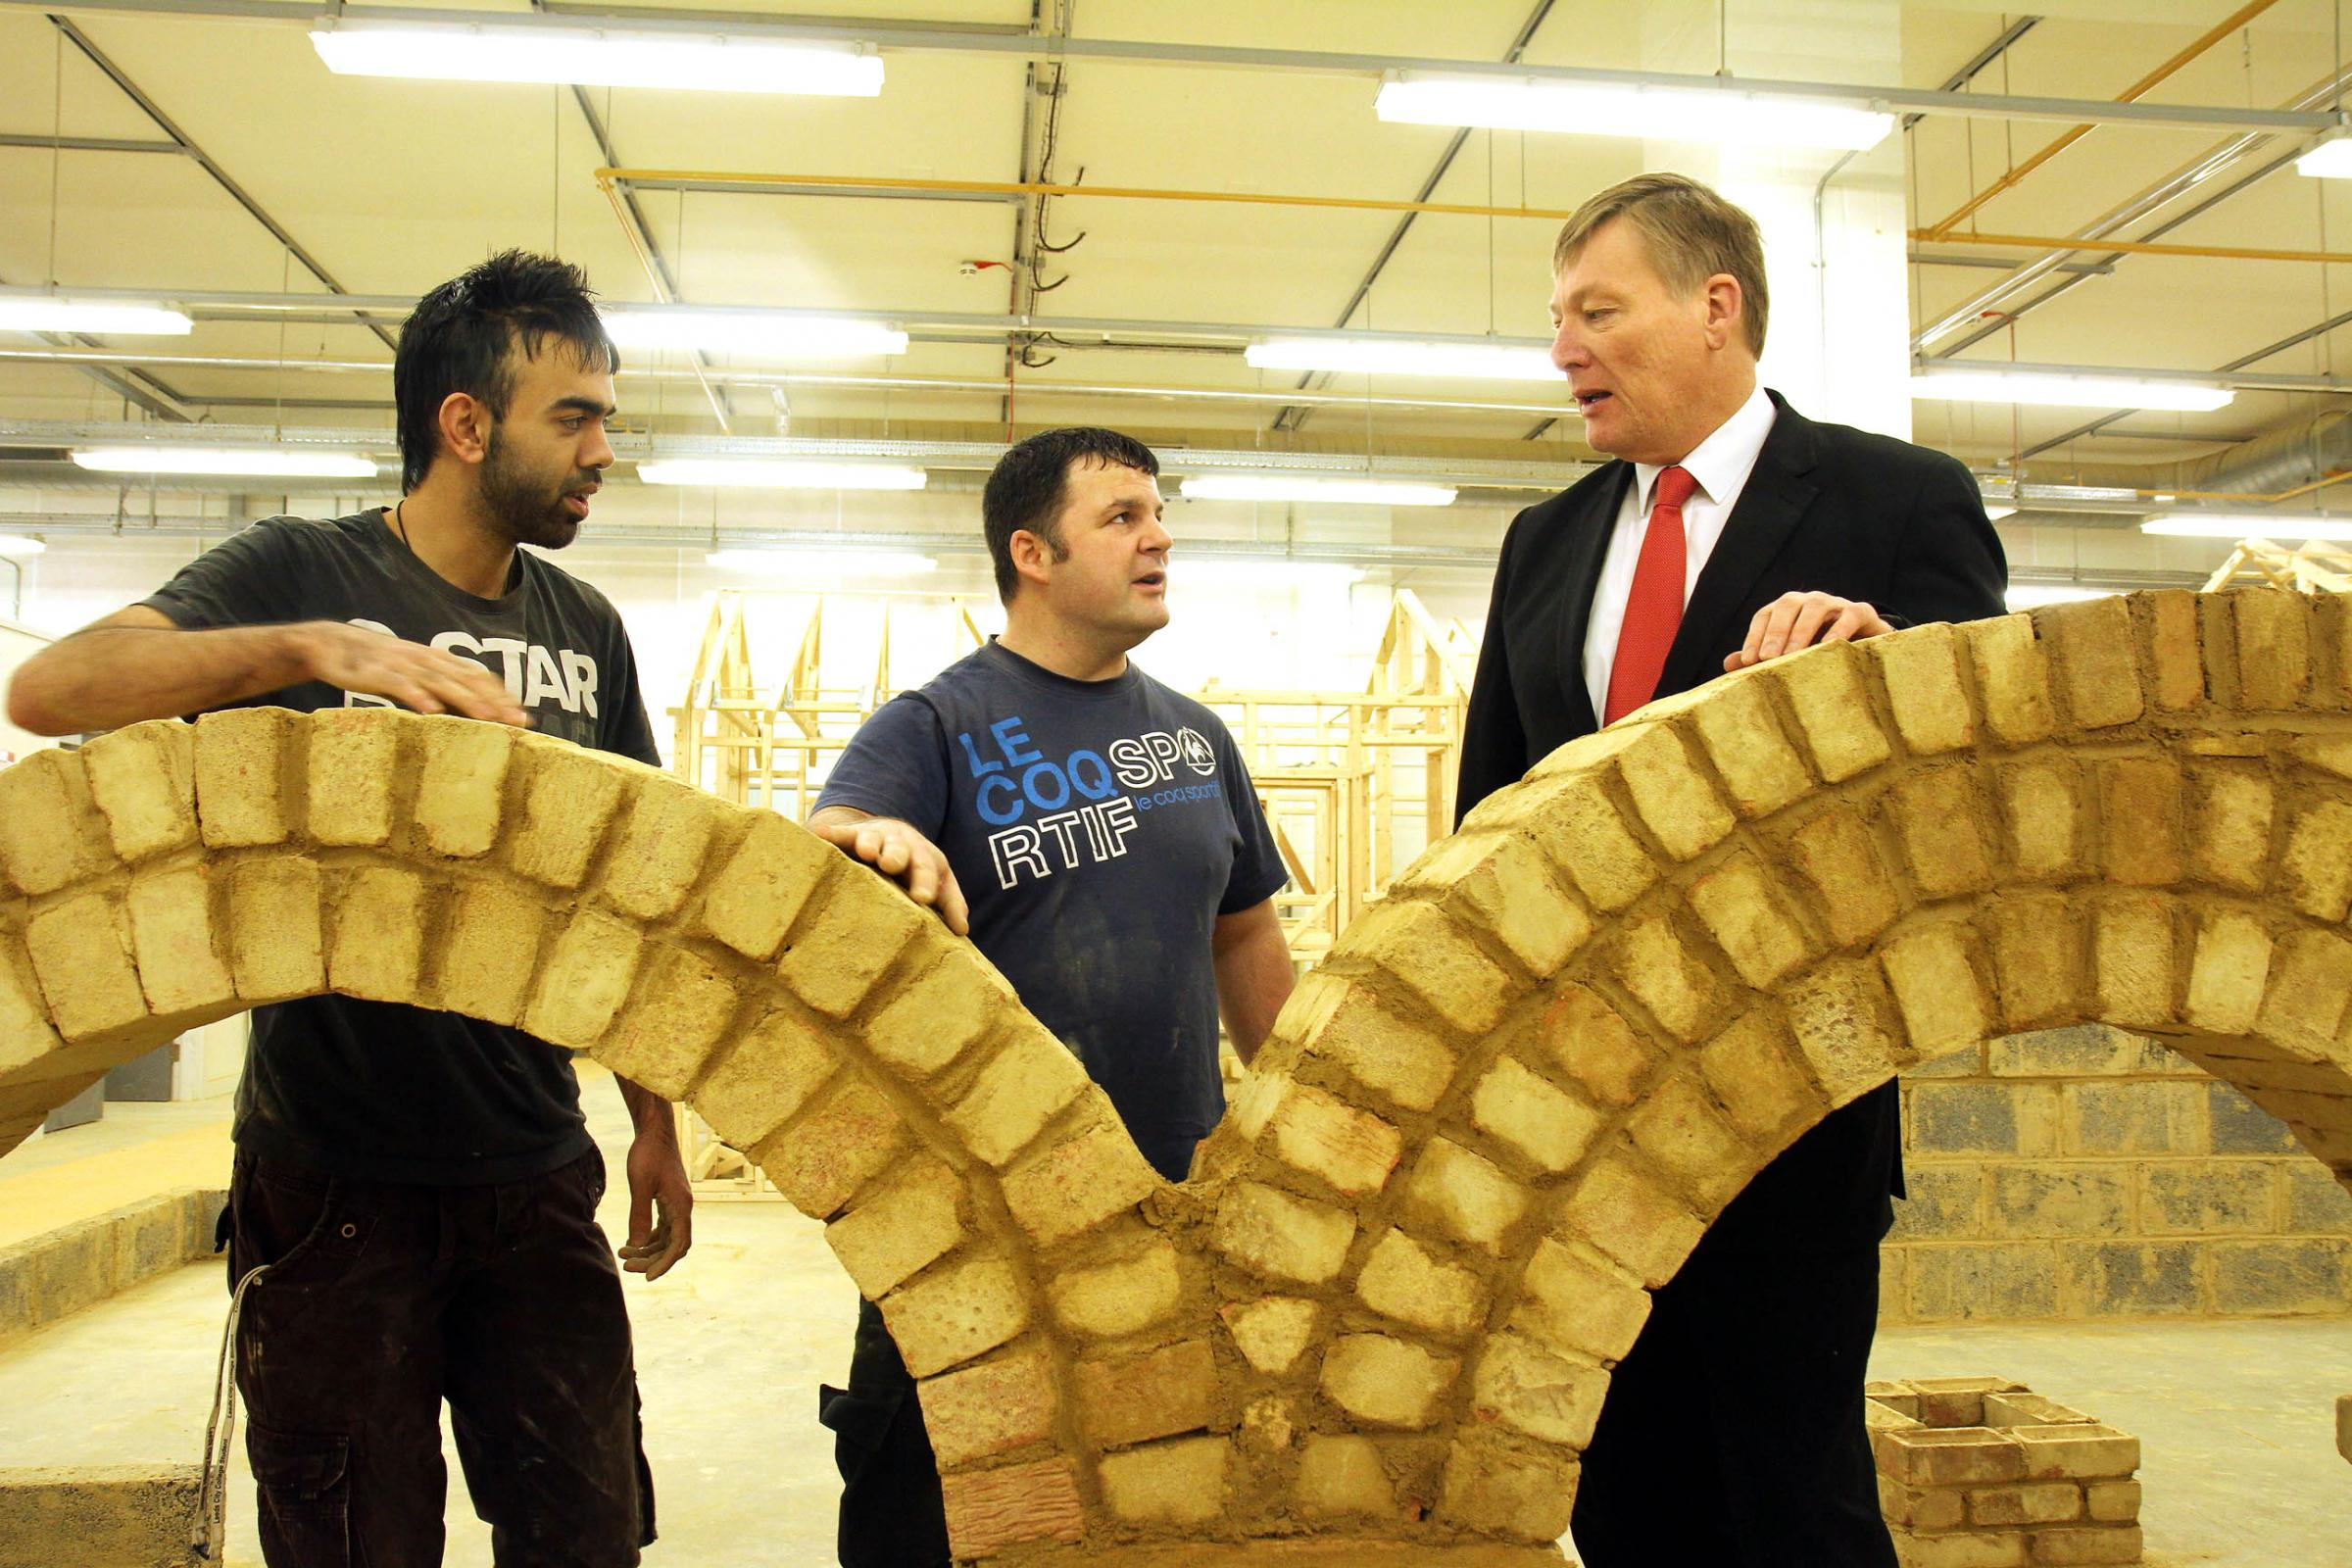 MP Kris Hopkins, right, talks to students Ibrahim Ali, left, and Martin Sutcliffe during his visit to Leeds City College Keighley Campus